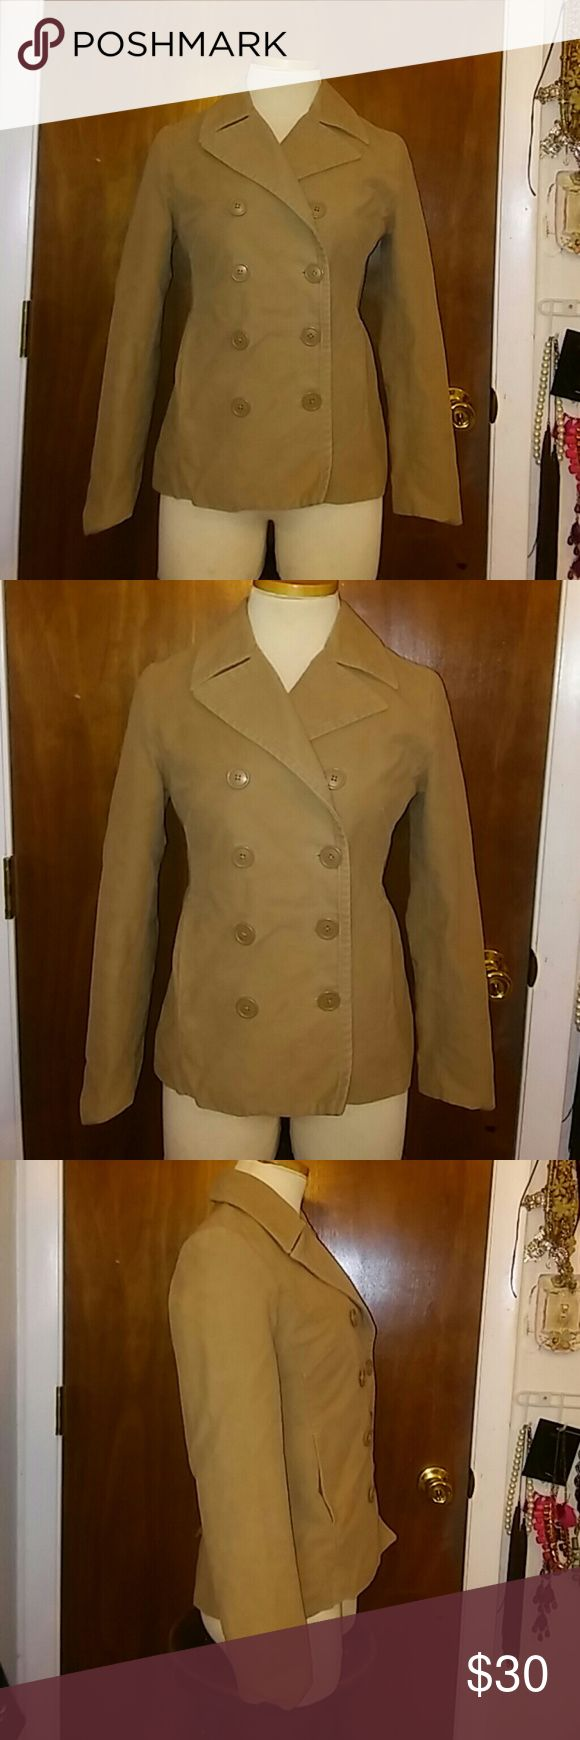 GAP Coat Very good condition. Beige Gap coat. Size XS Bust:36in GAP Jackets & Coats Pea Coats